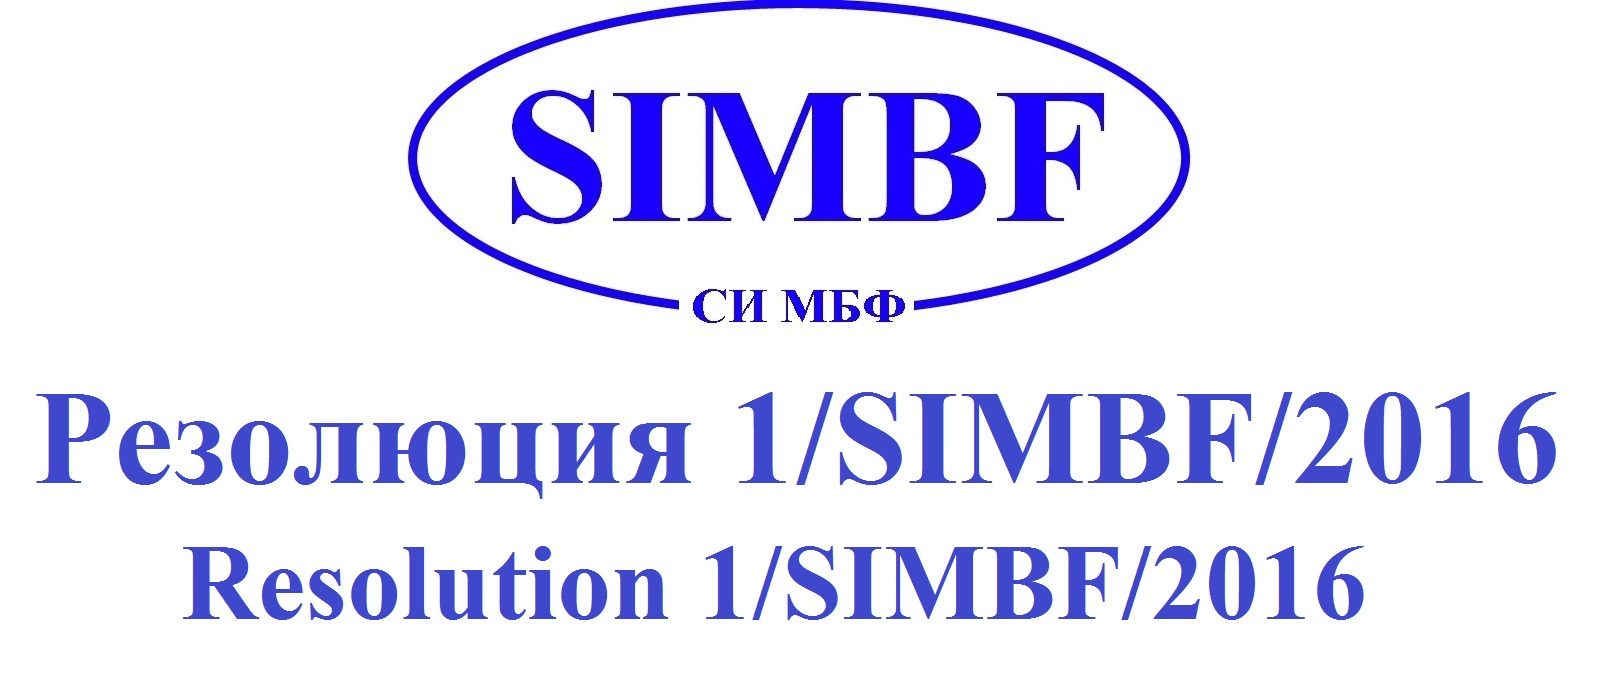 SIMBF 2016 Resolution